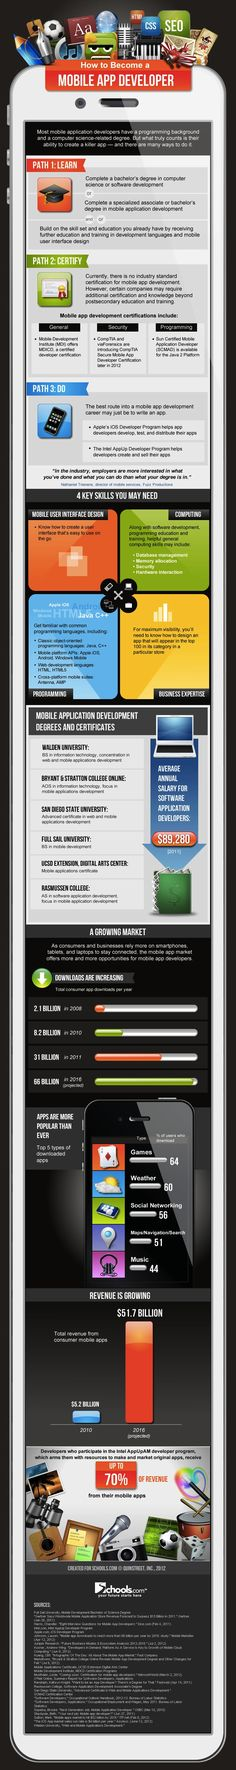 How to become a Mobile APP Developer #Tech #Infographic